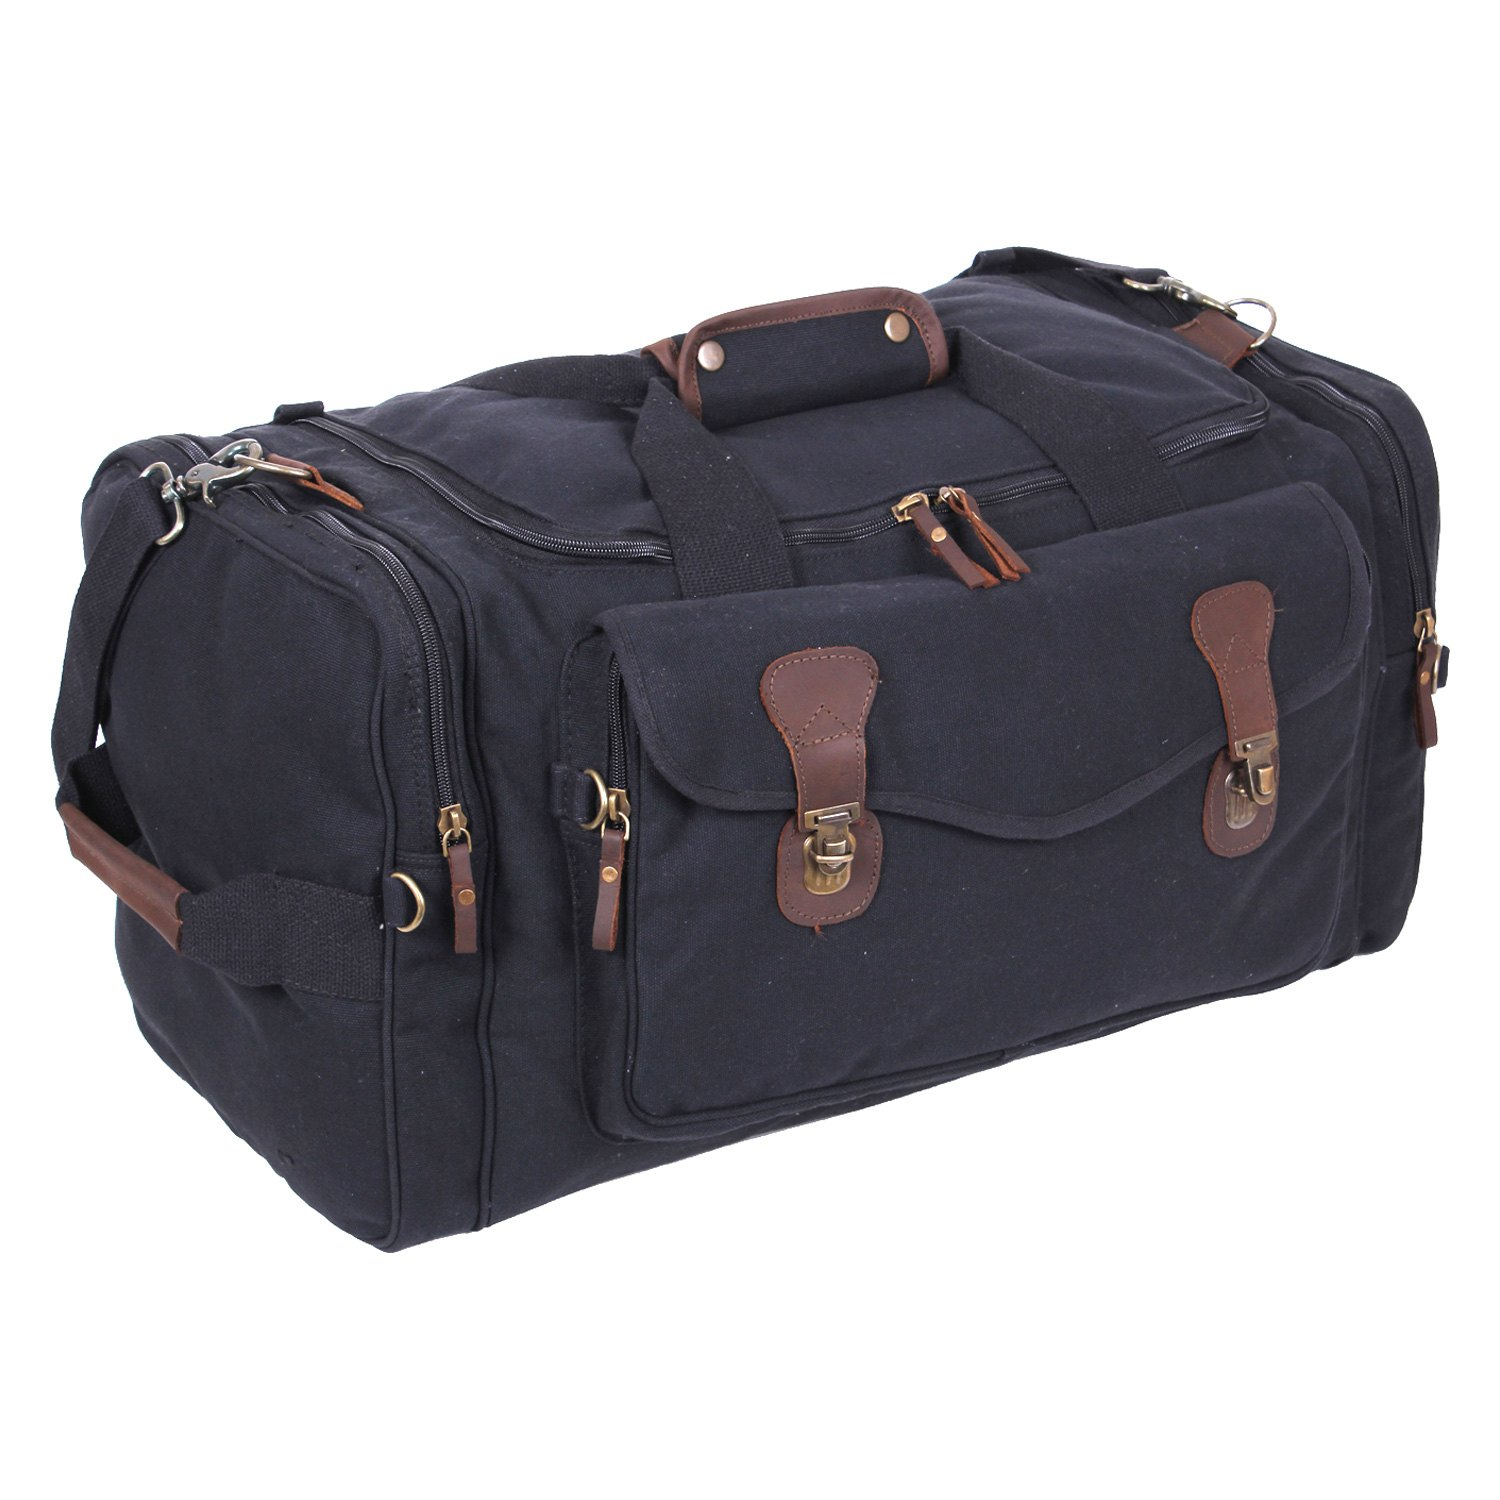 93198f8ad1 Rothco® 9611 - Canvas Long Weekend Bag - RECREATIONiD.com